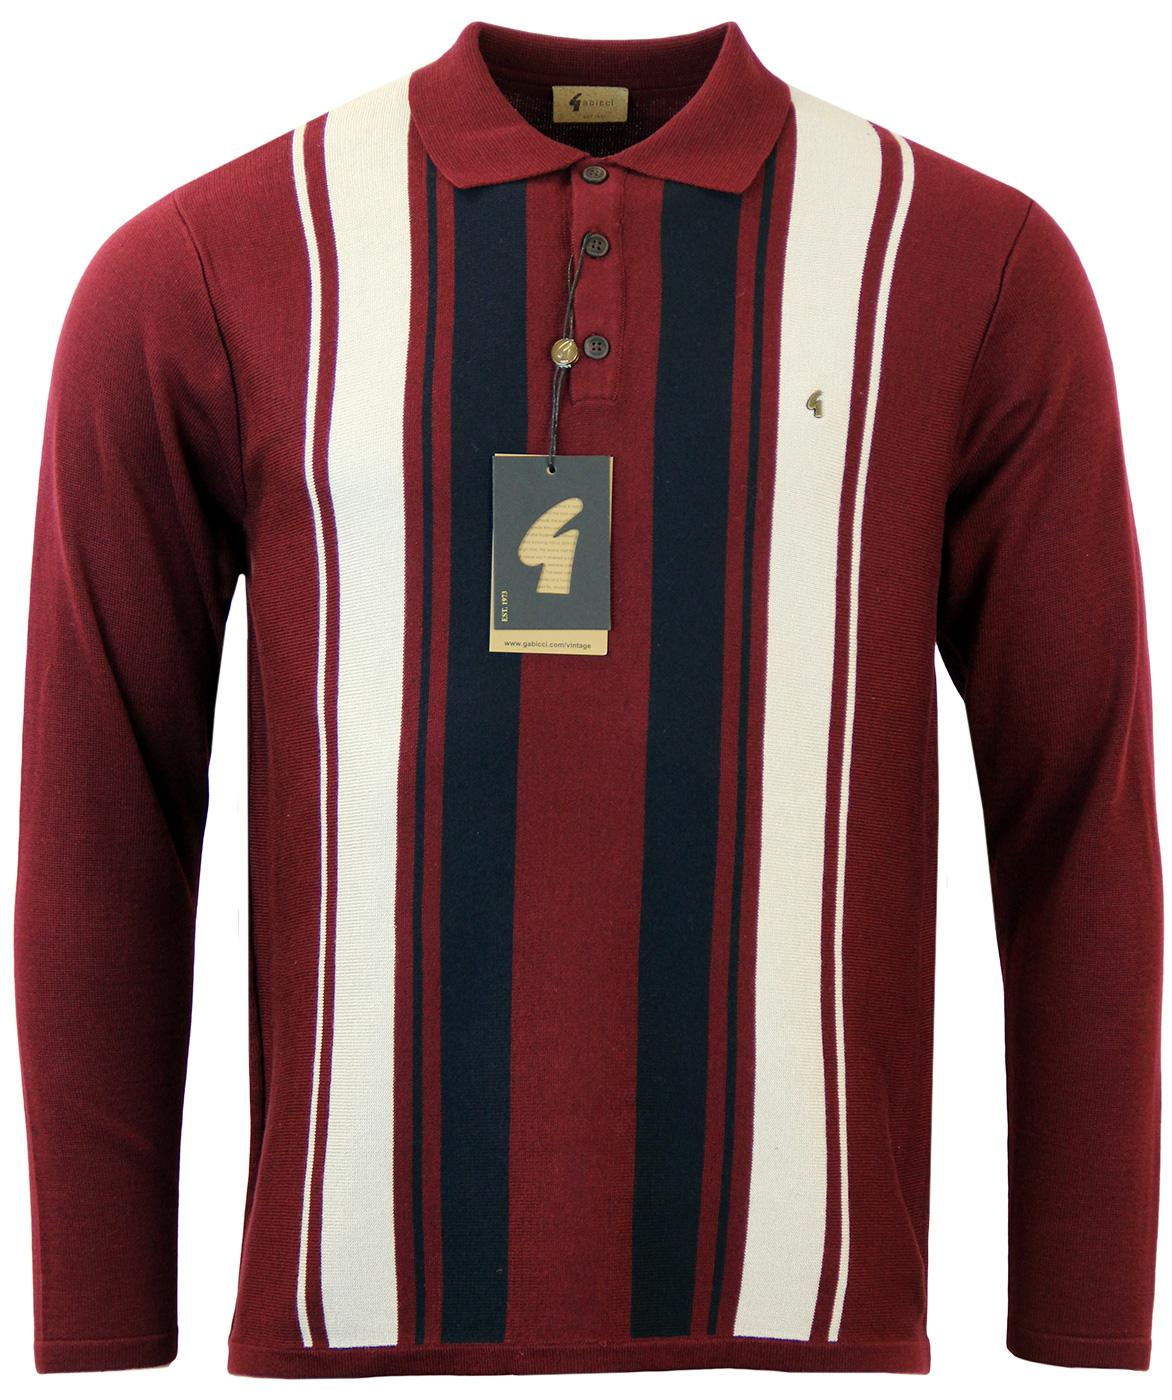 GABICCI VINTAGE 60s Mod Stripe Knit Polo Port